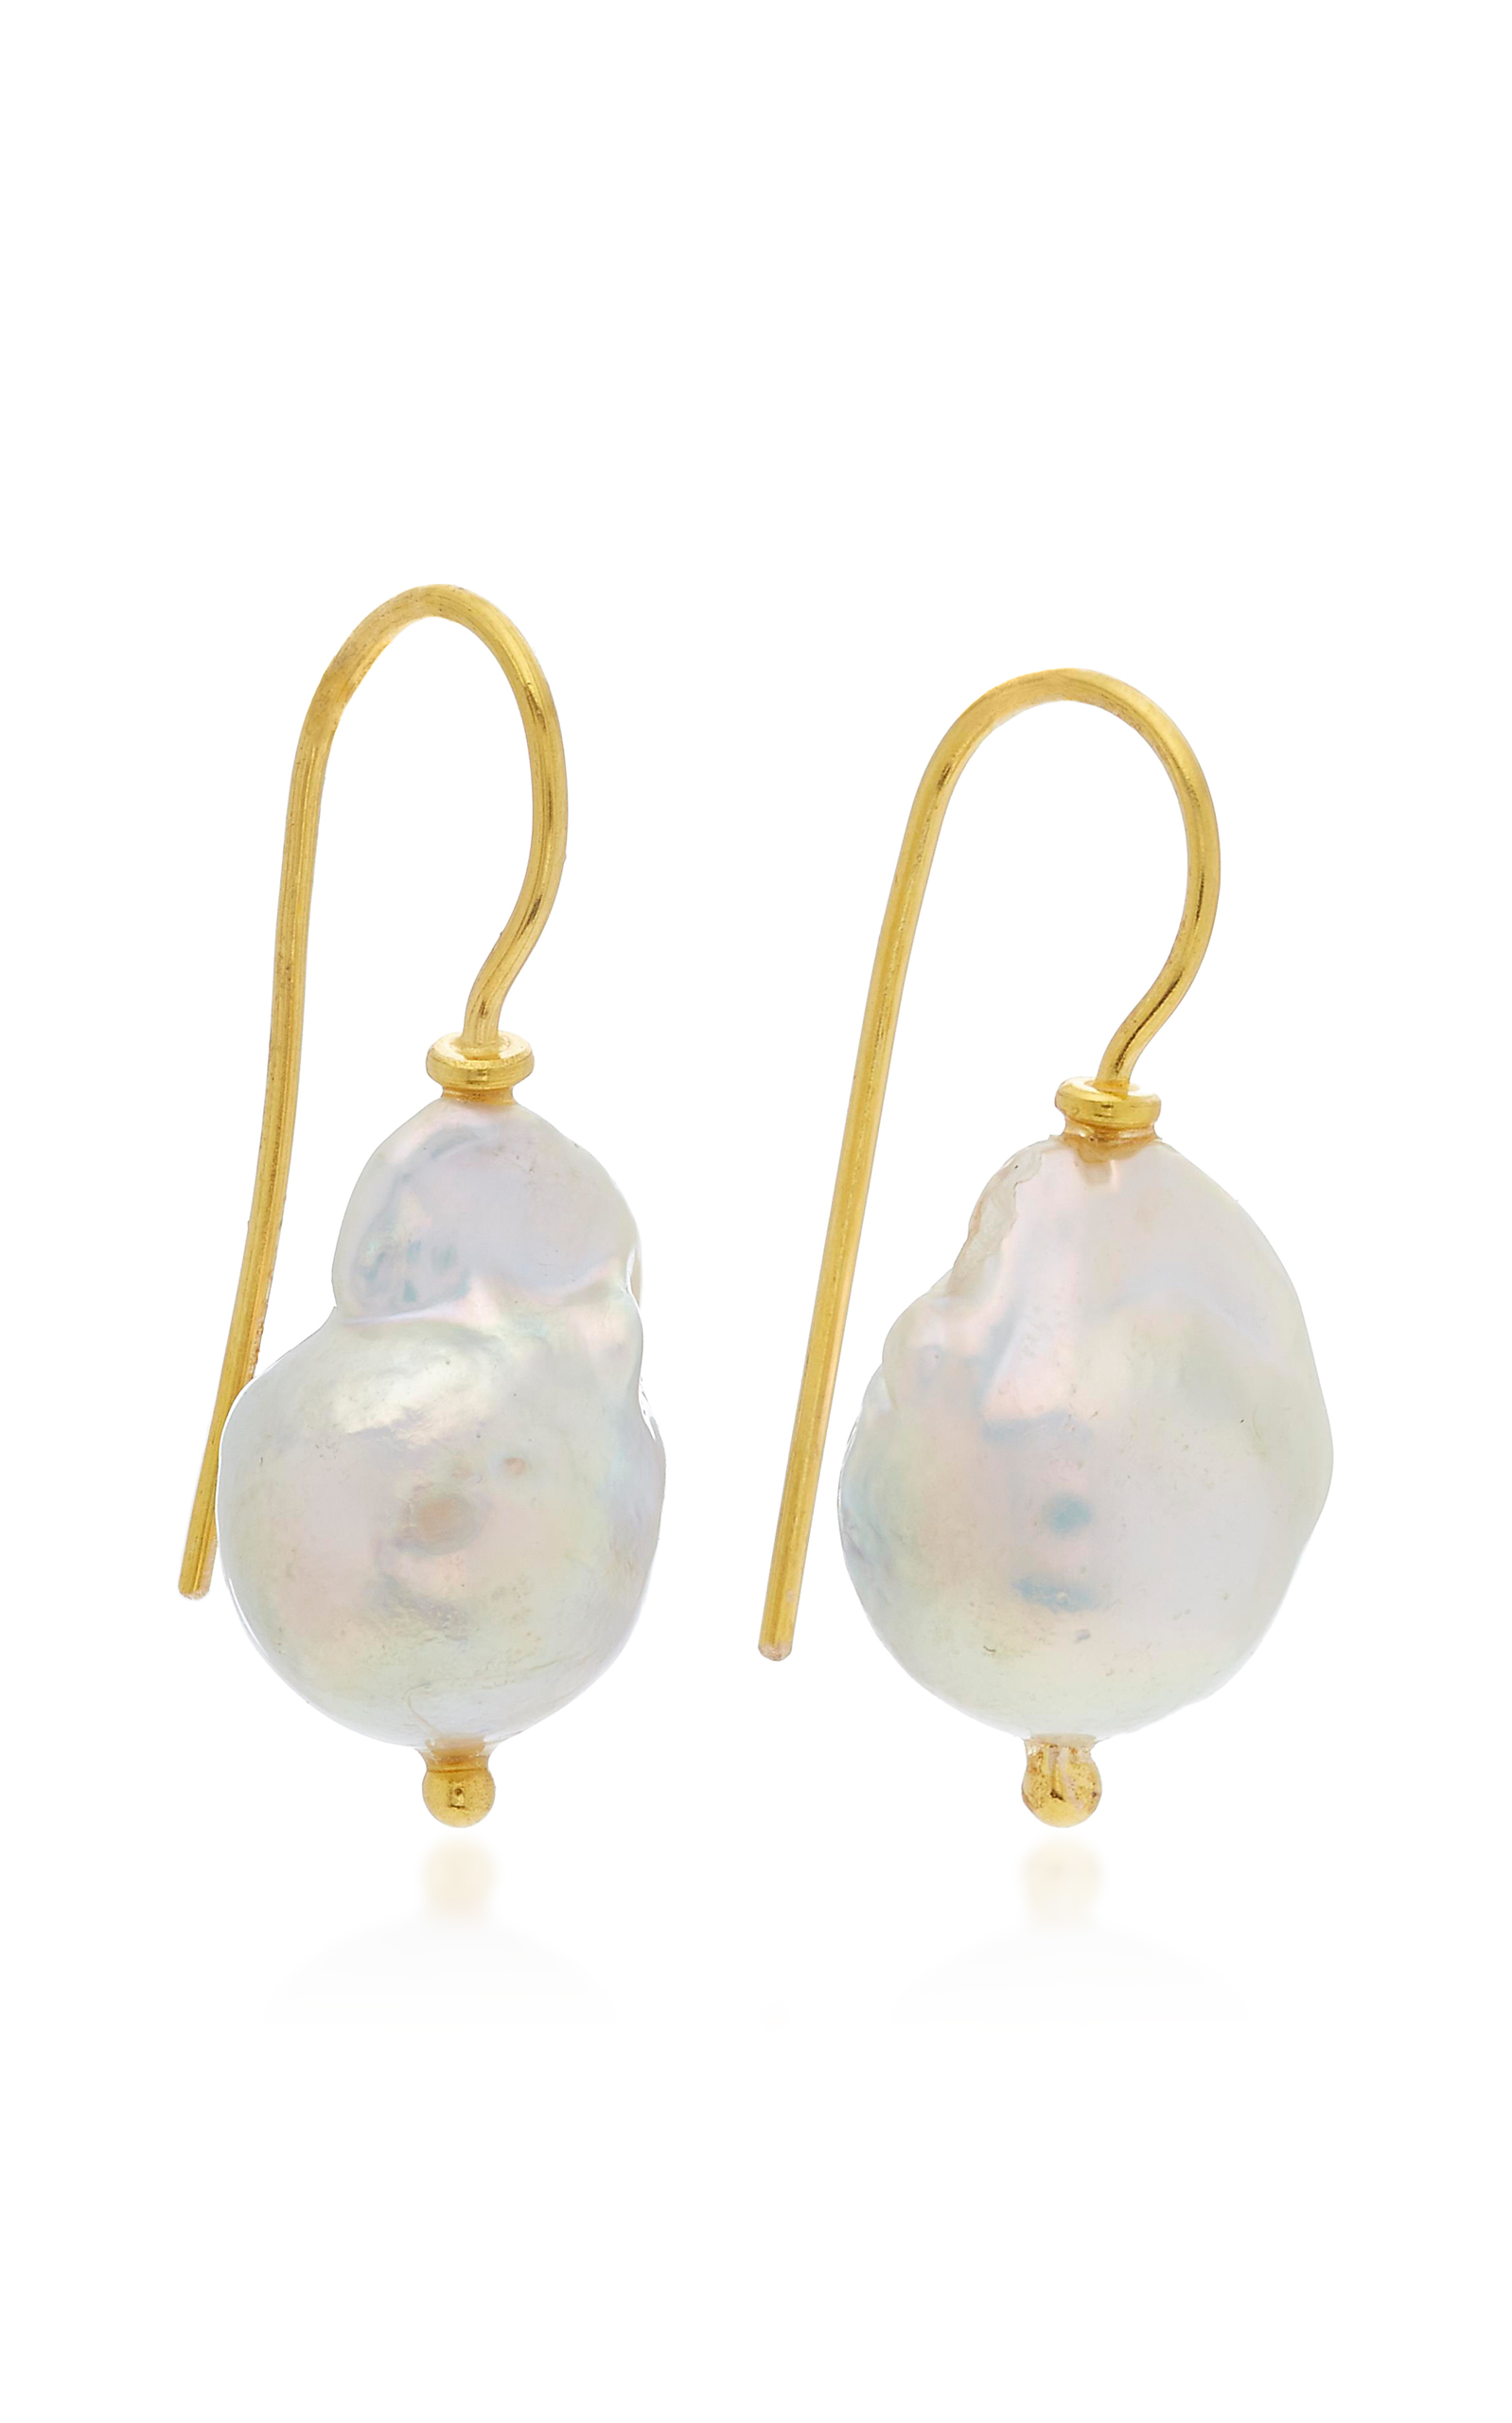 understated to crystal handmade swarovski of candela teardrops earrings reflects cool glow pin single a pearl drawing its light the eye off